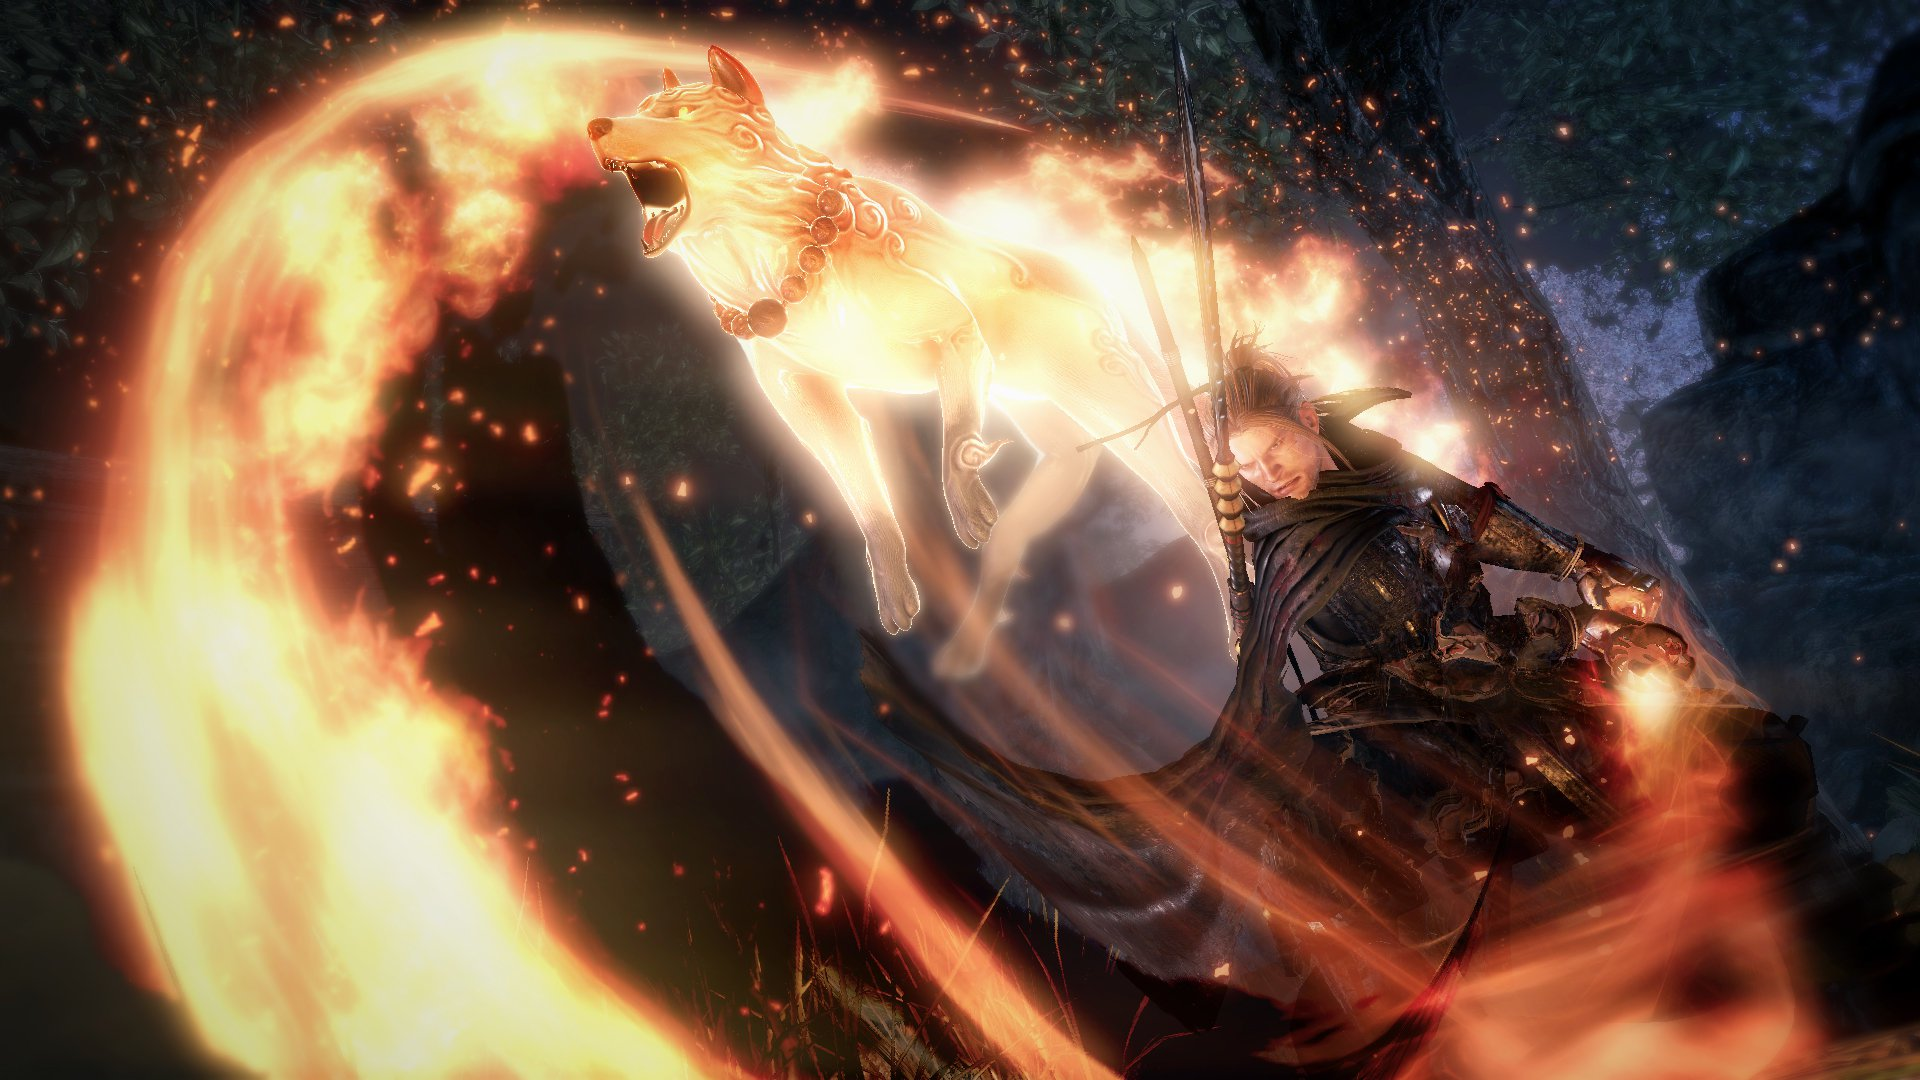 Koei Tecmo is still encouraged by Nioh's sales two years after launch: it just hit 2.5 million worldwide screenshot